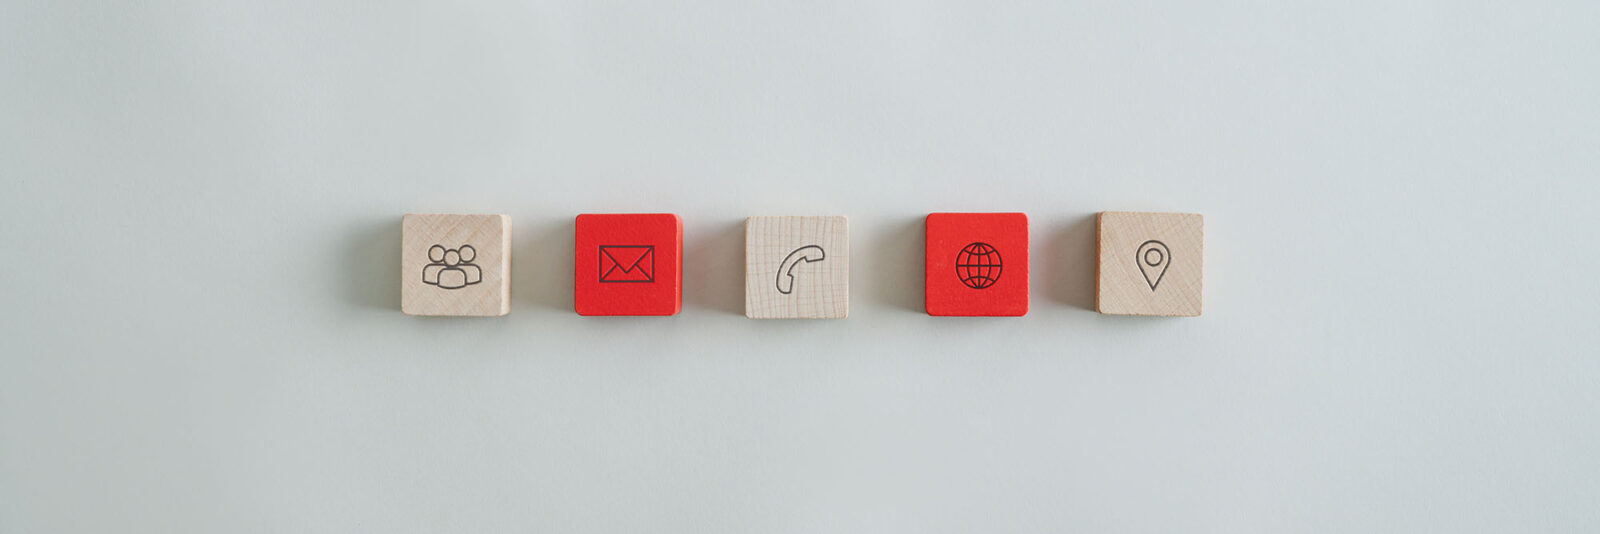 Wide view image of five wooden blocks with contact and information icons placed over grey background.